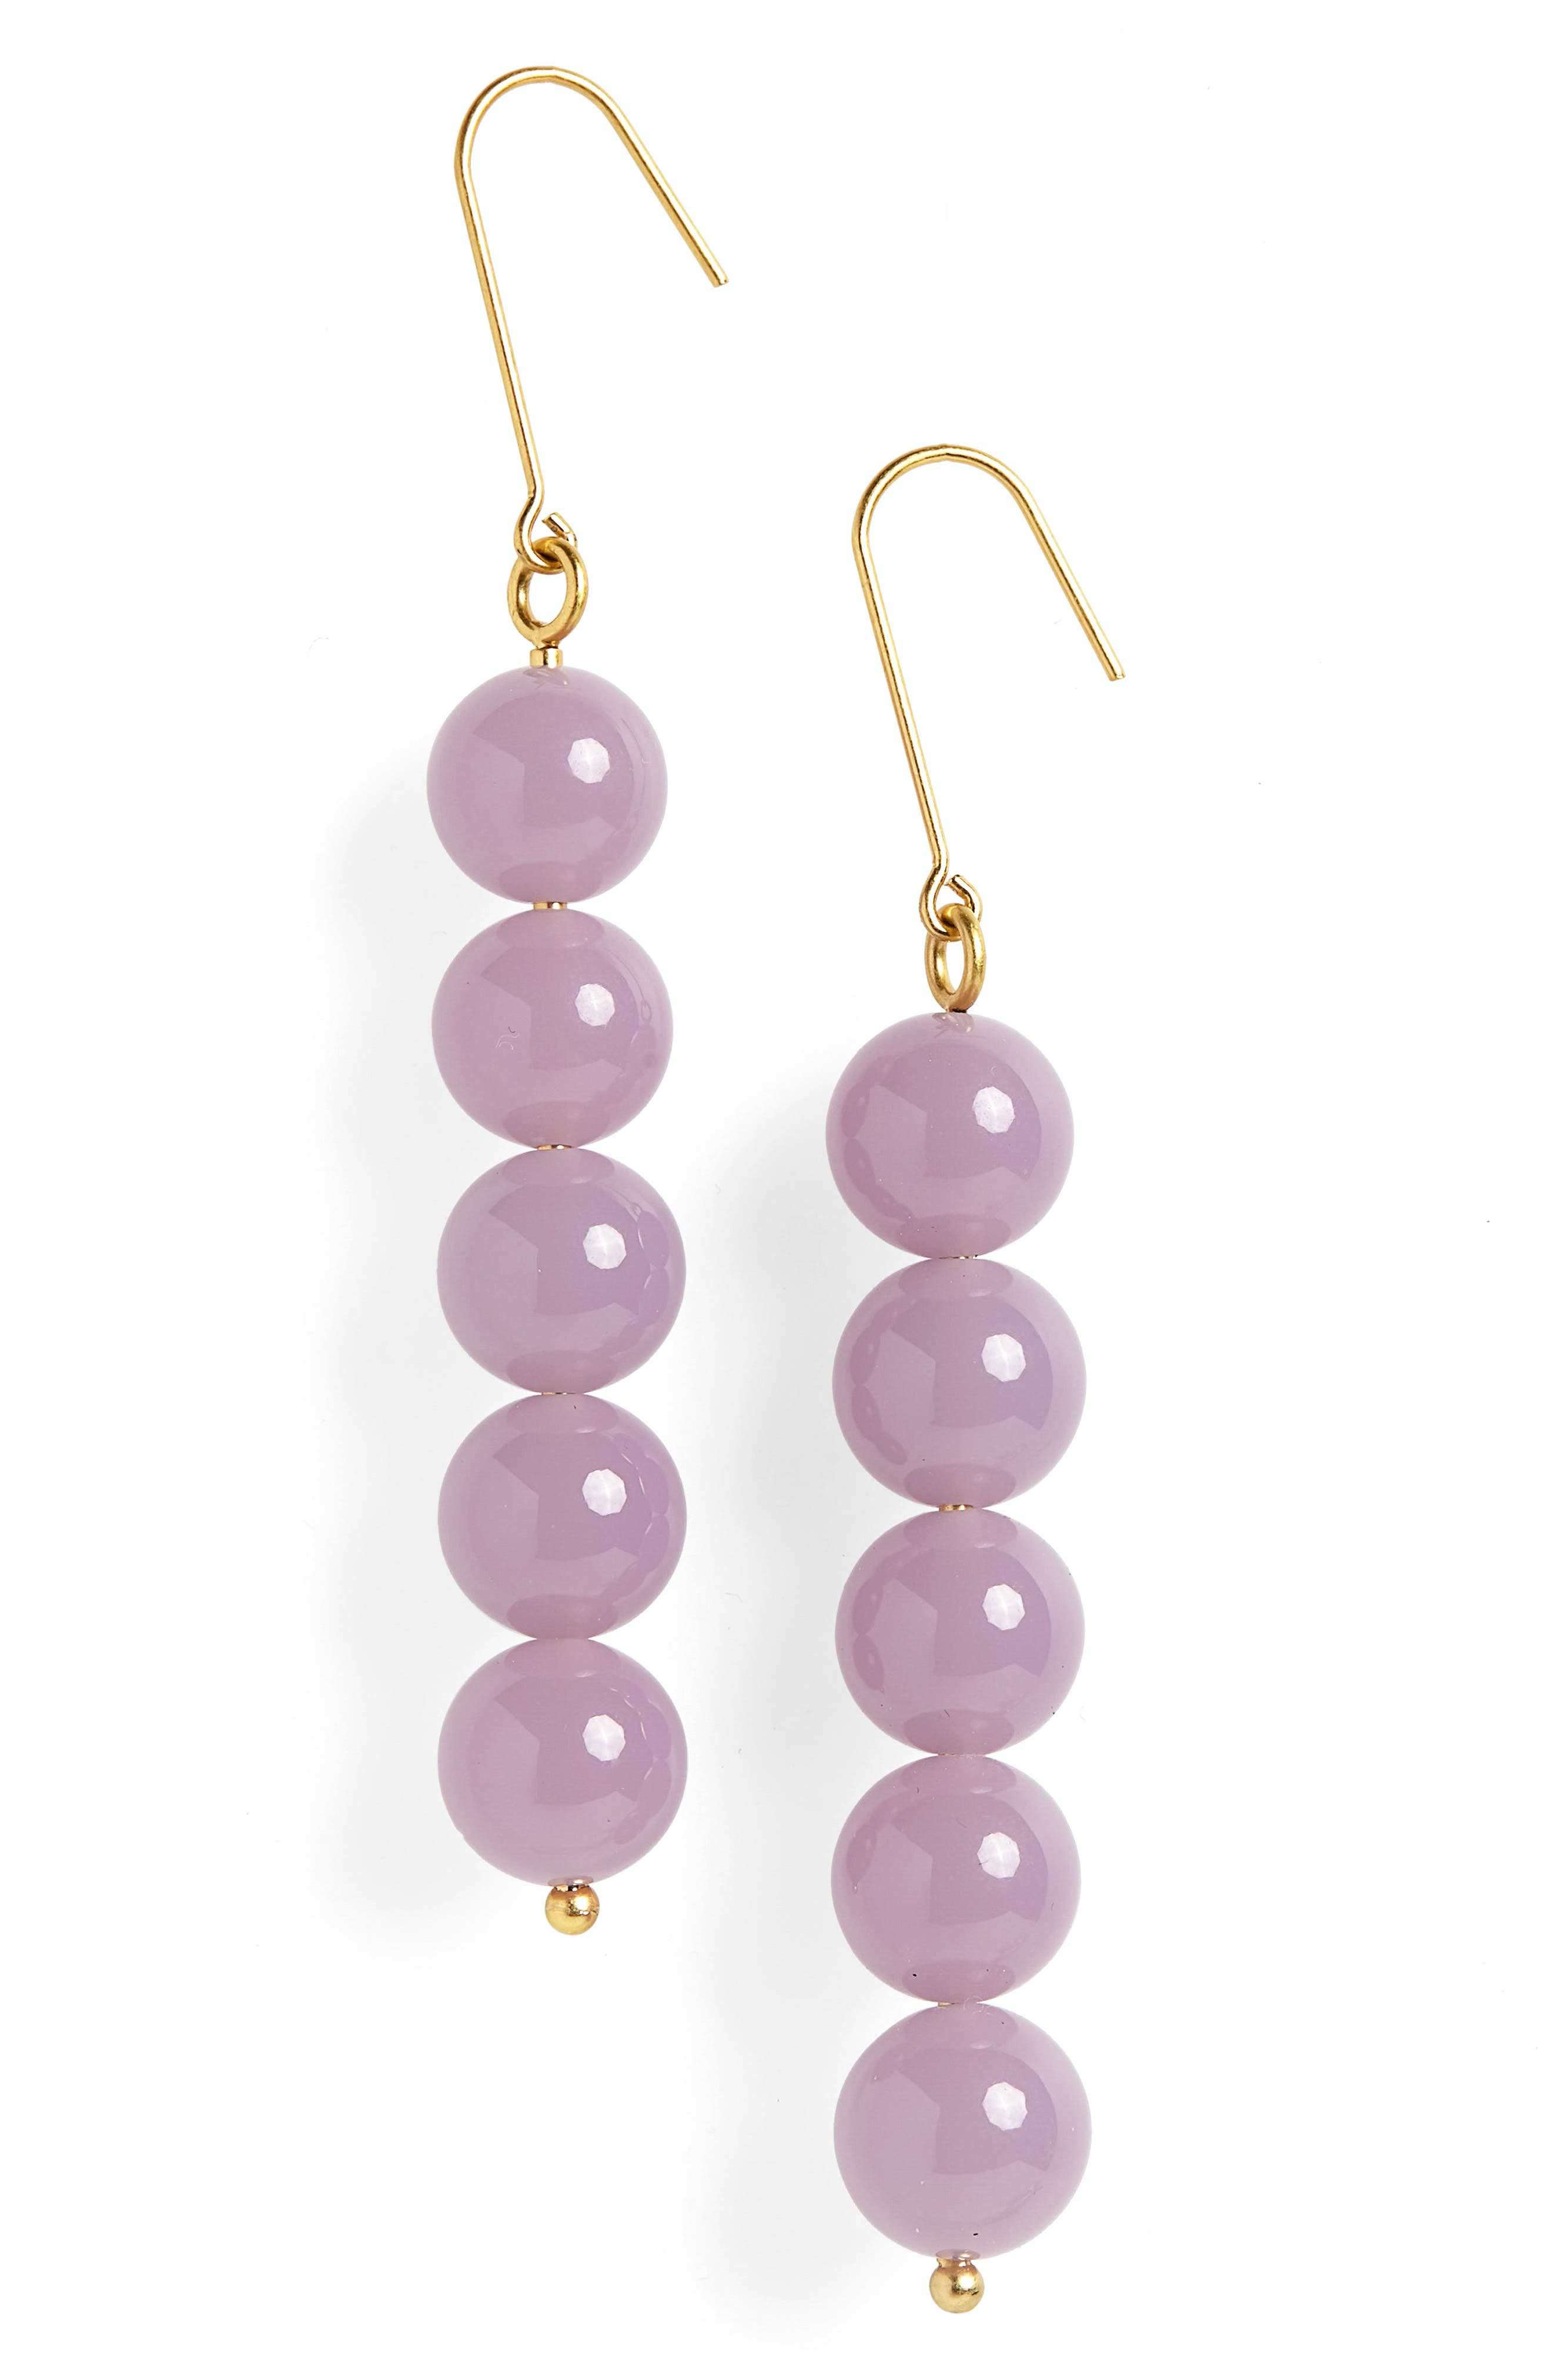 Ball Drop Earrings,                             Main thumbnail 1, color,                             WISTERIA DOVE